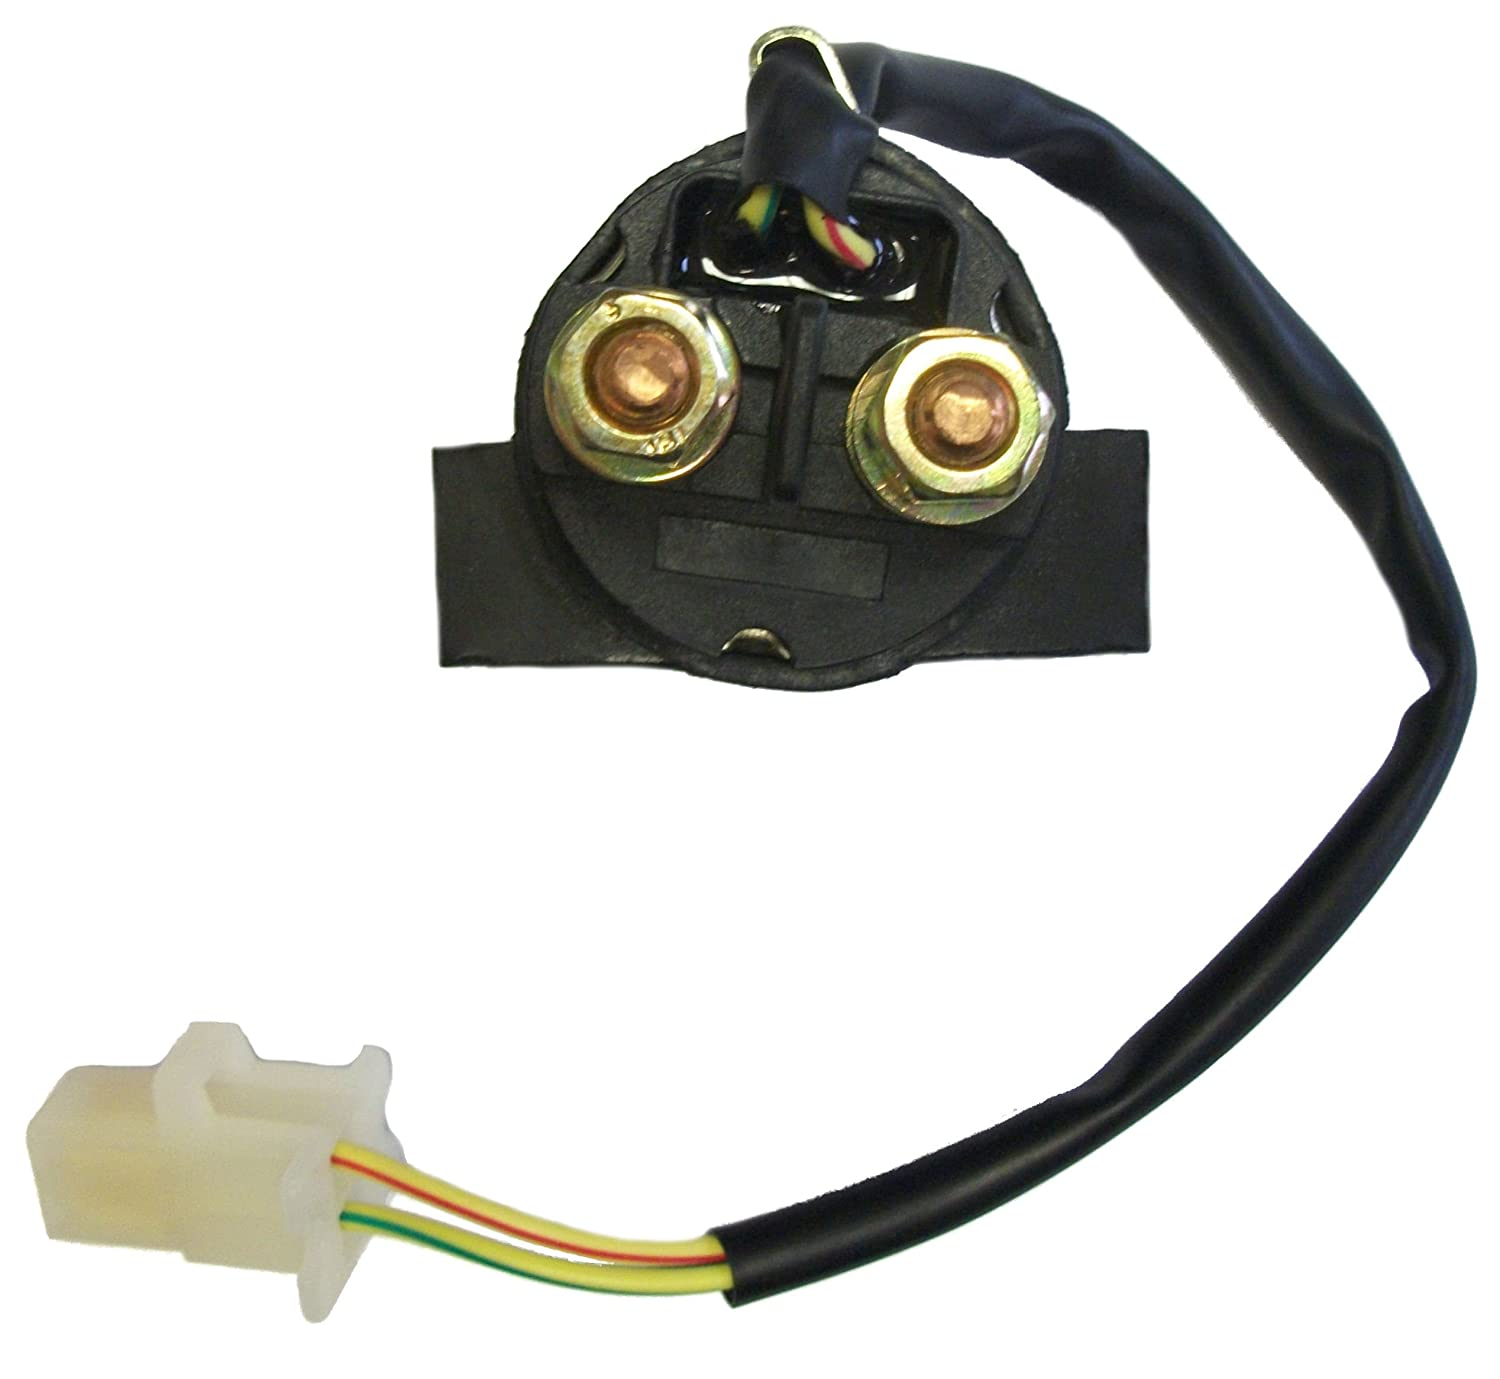 amazon com: starter relay solenoid yamaha ttr225 ttr 225 1999 2000 2001  2002 2003 2004 new: automotive